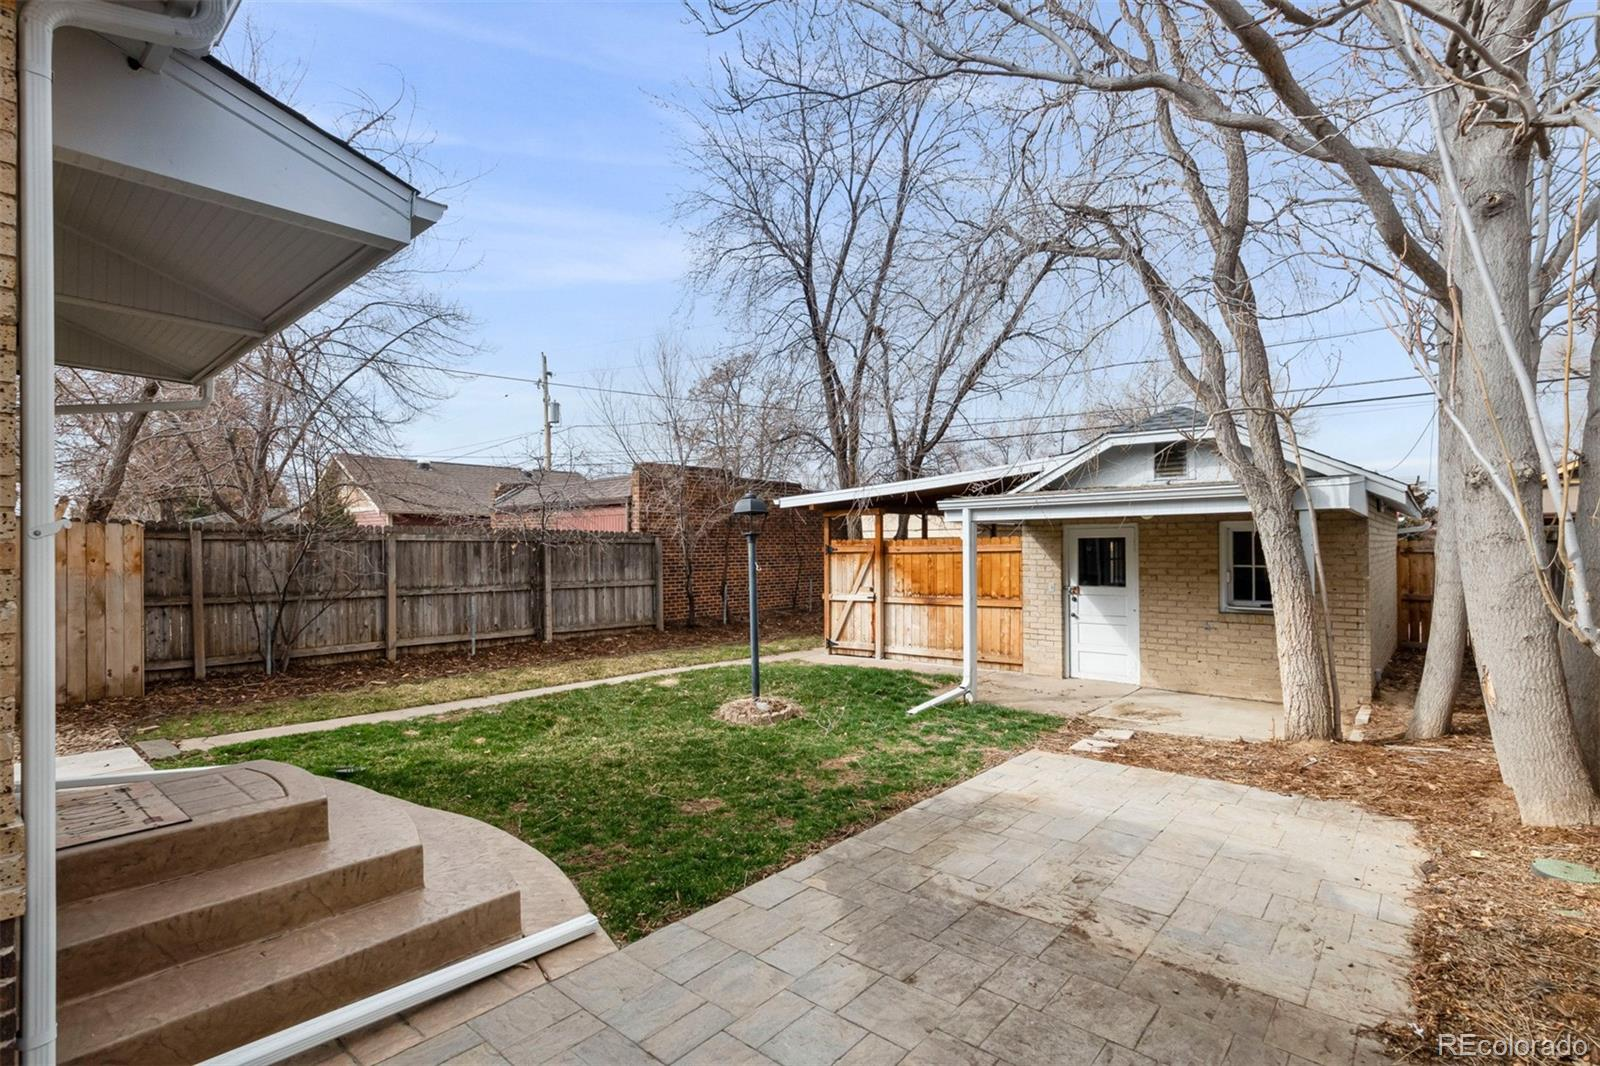 MLS# 2452571 - 26 - 1951 S Sherman Street, Denver, CO 80210